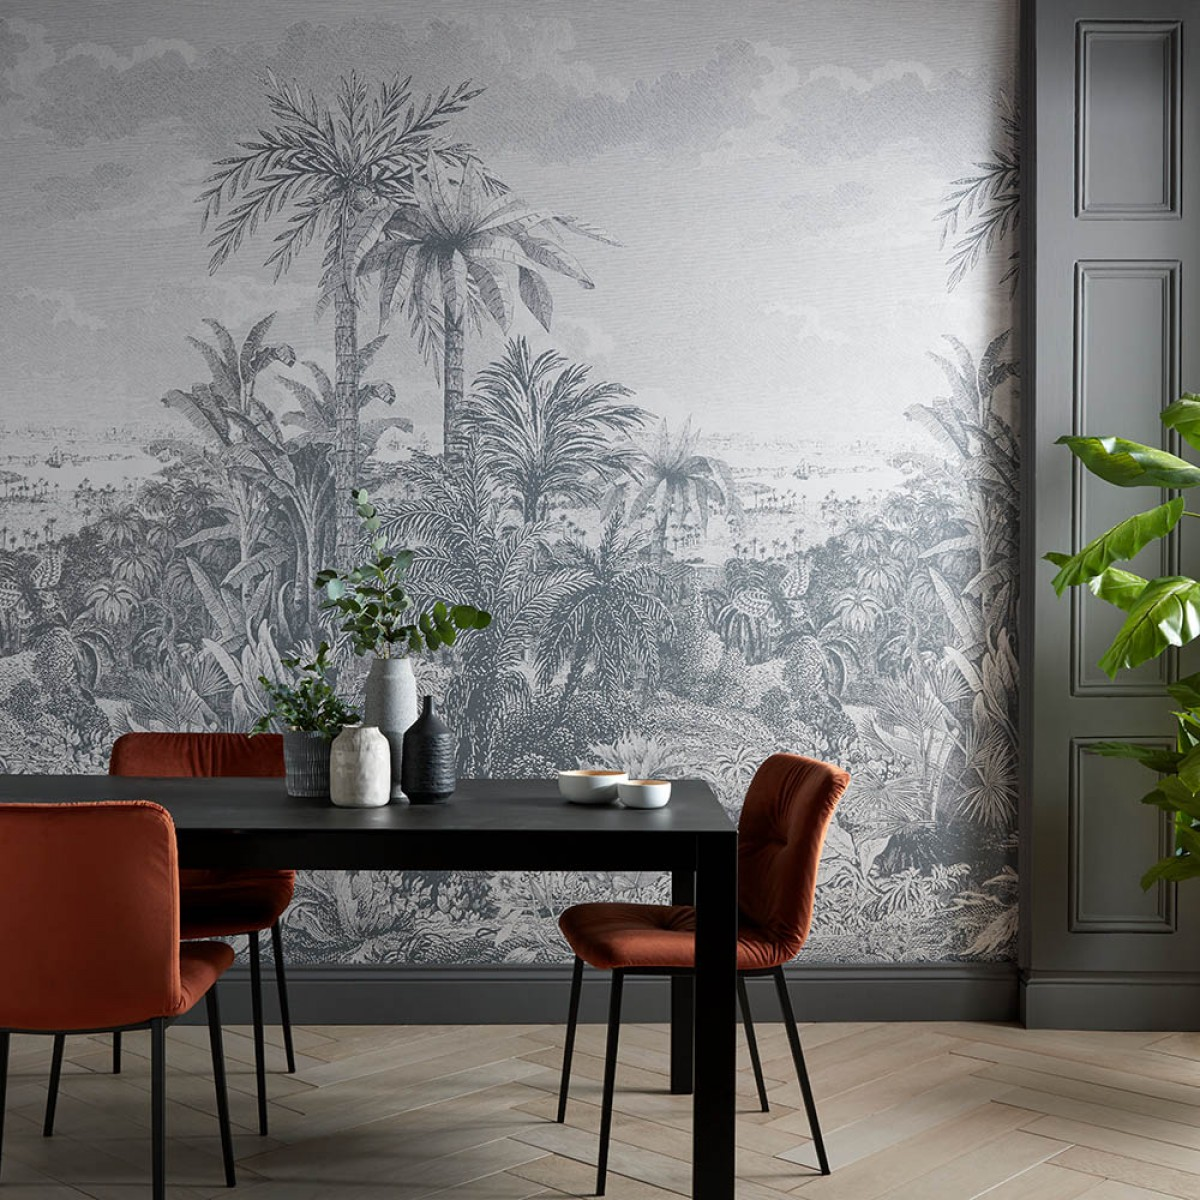 Tapet Paradise Found, 1838 Wallcoverings, 6.5mp / rola